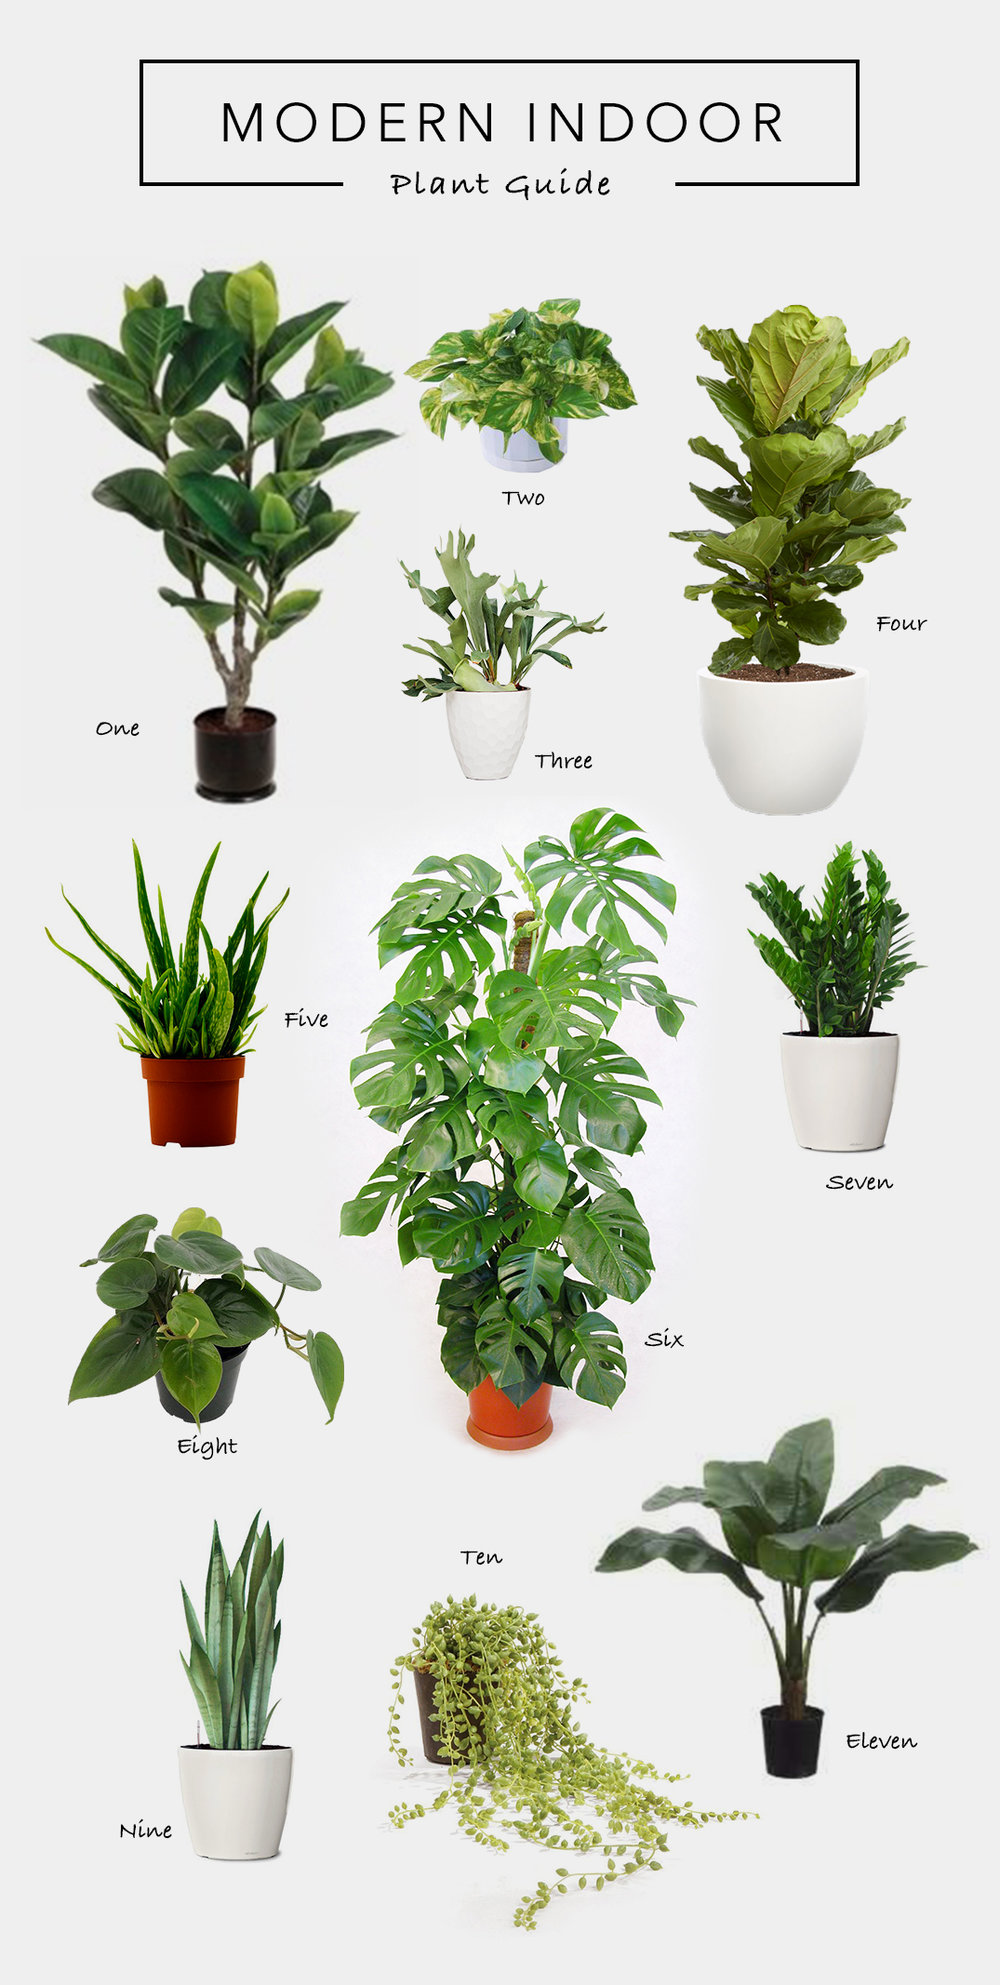 "Rubber Tree | Heart Leafed Philodendron | Staghorn Fern | Fiddle Leaf Fig | Aloe Plant | Monstera Deliciosa/""Cottage Cheese Plant"" 